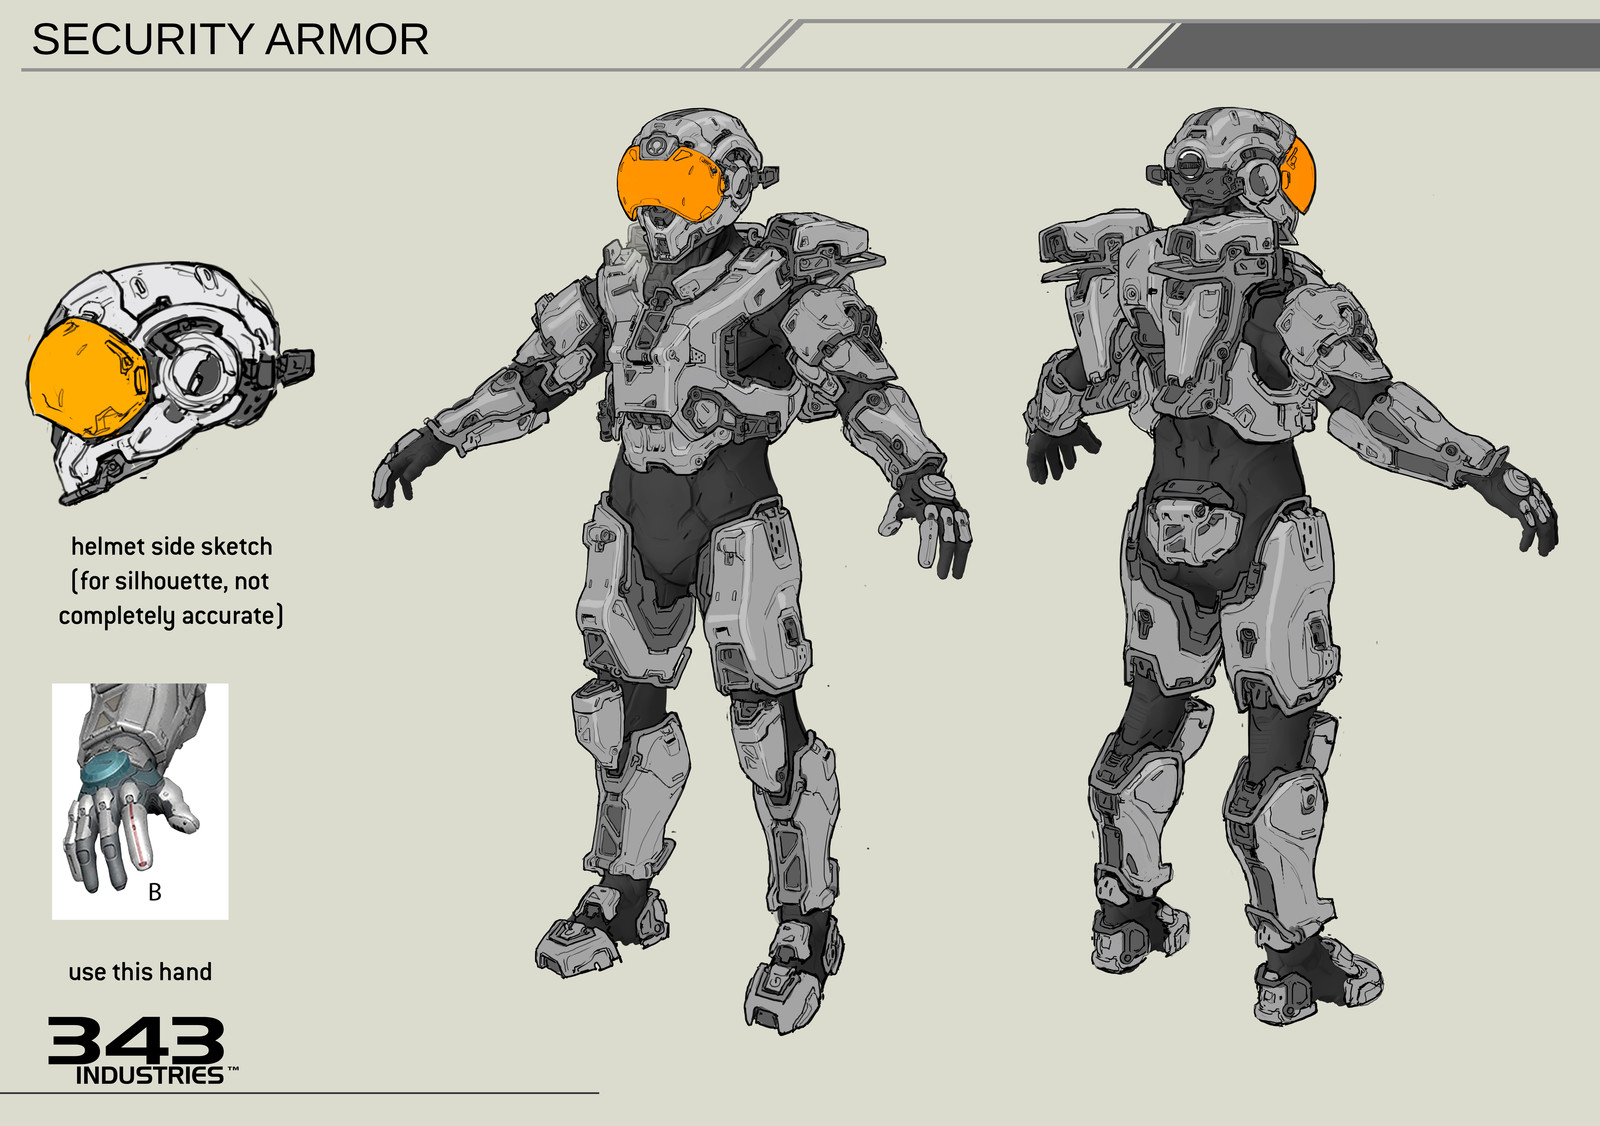 Halo 5 Security Armor